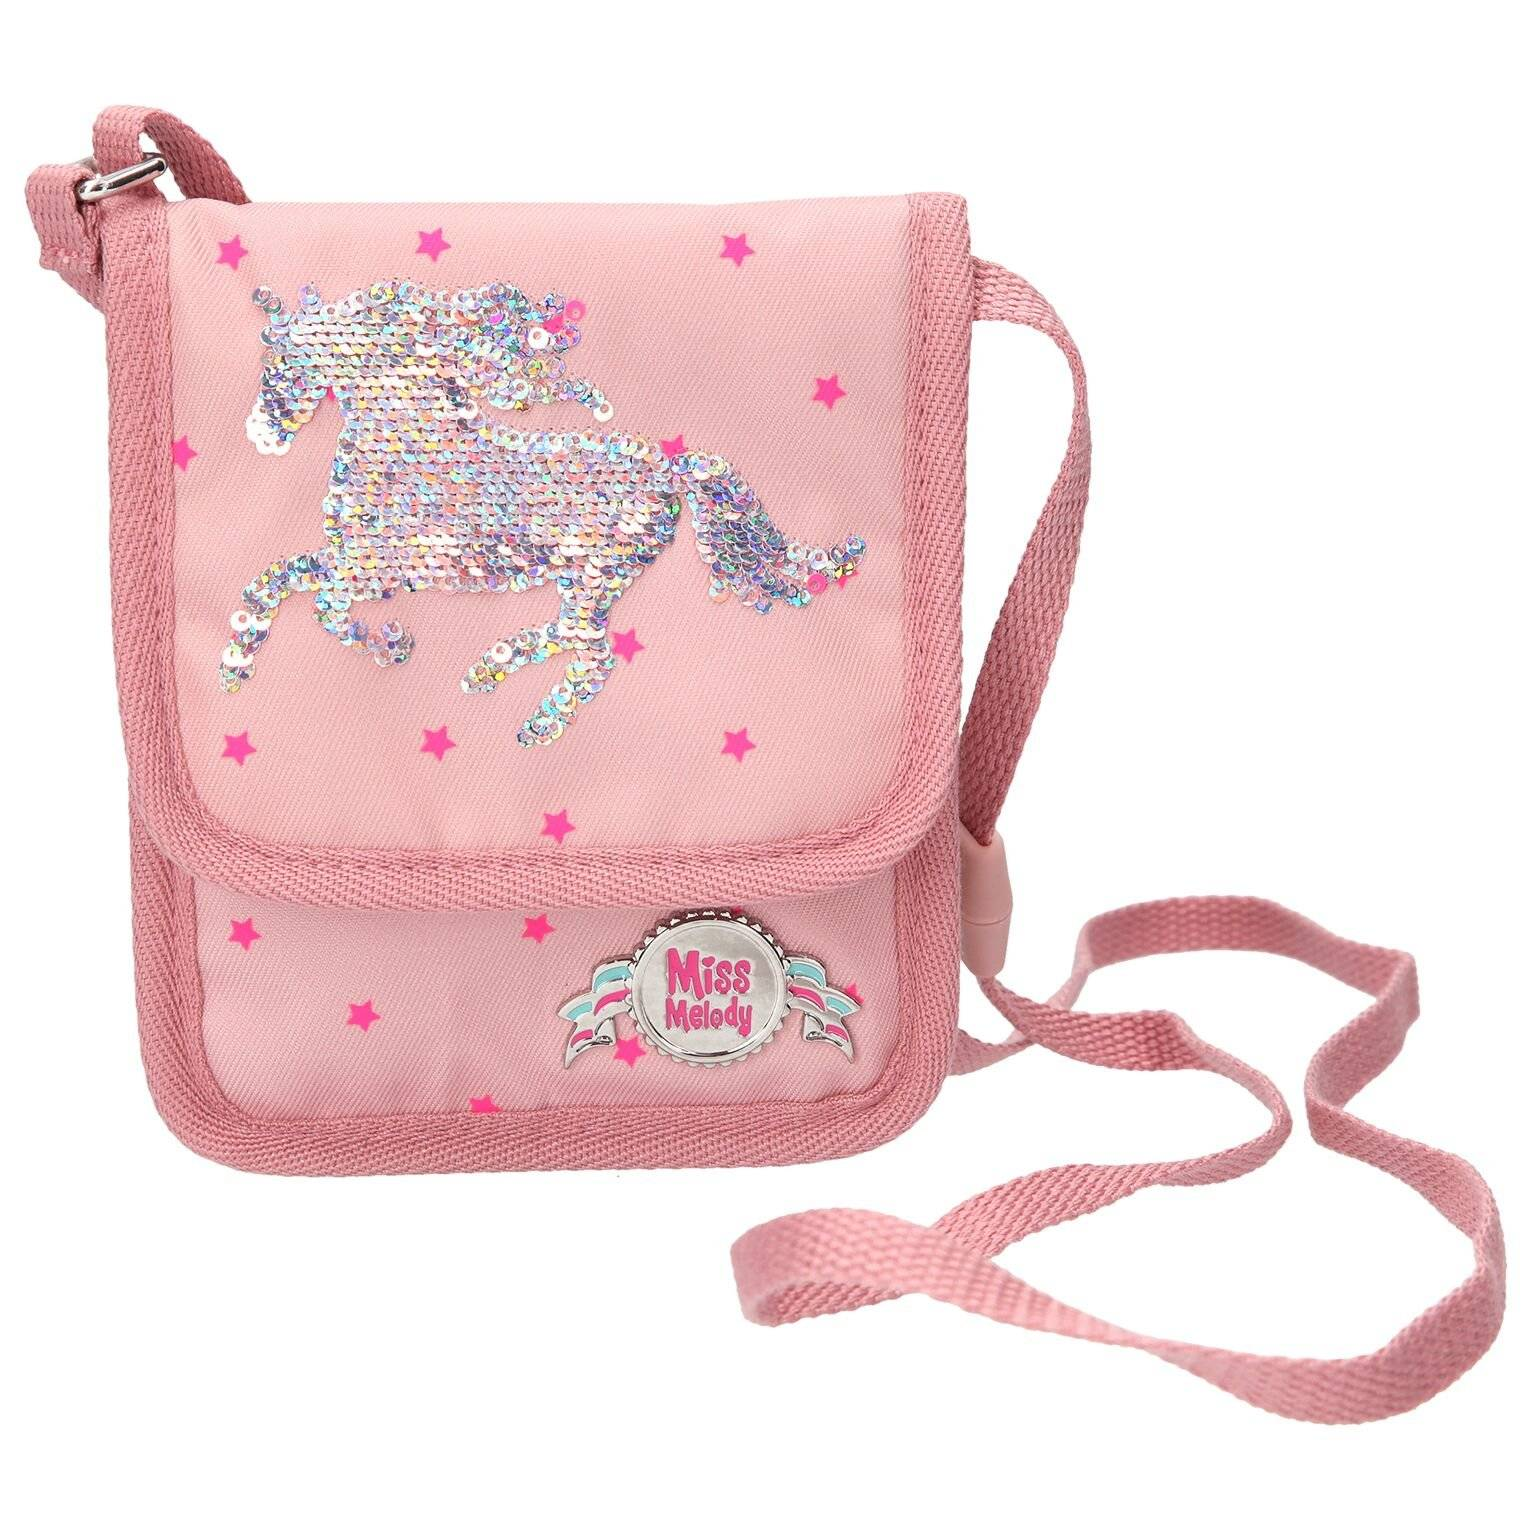 Miss Melody Small Bag with Sequins Pink (004984)